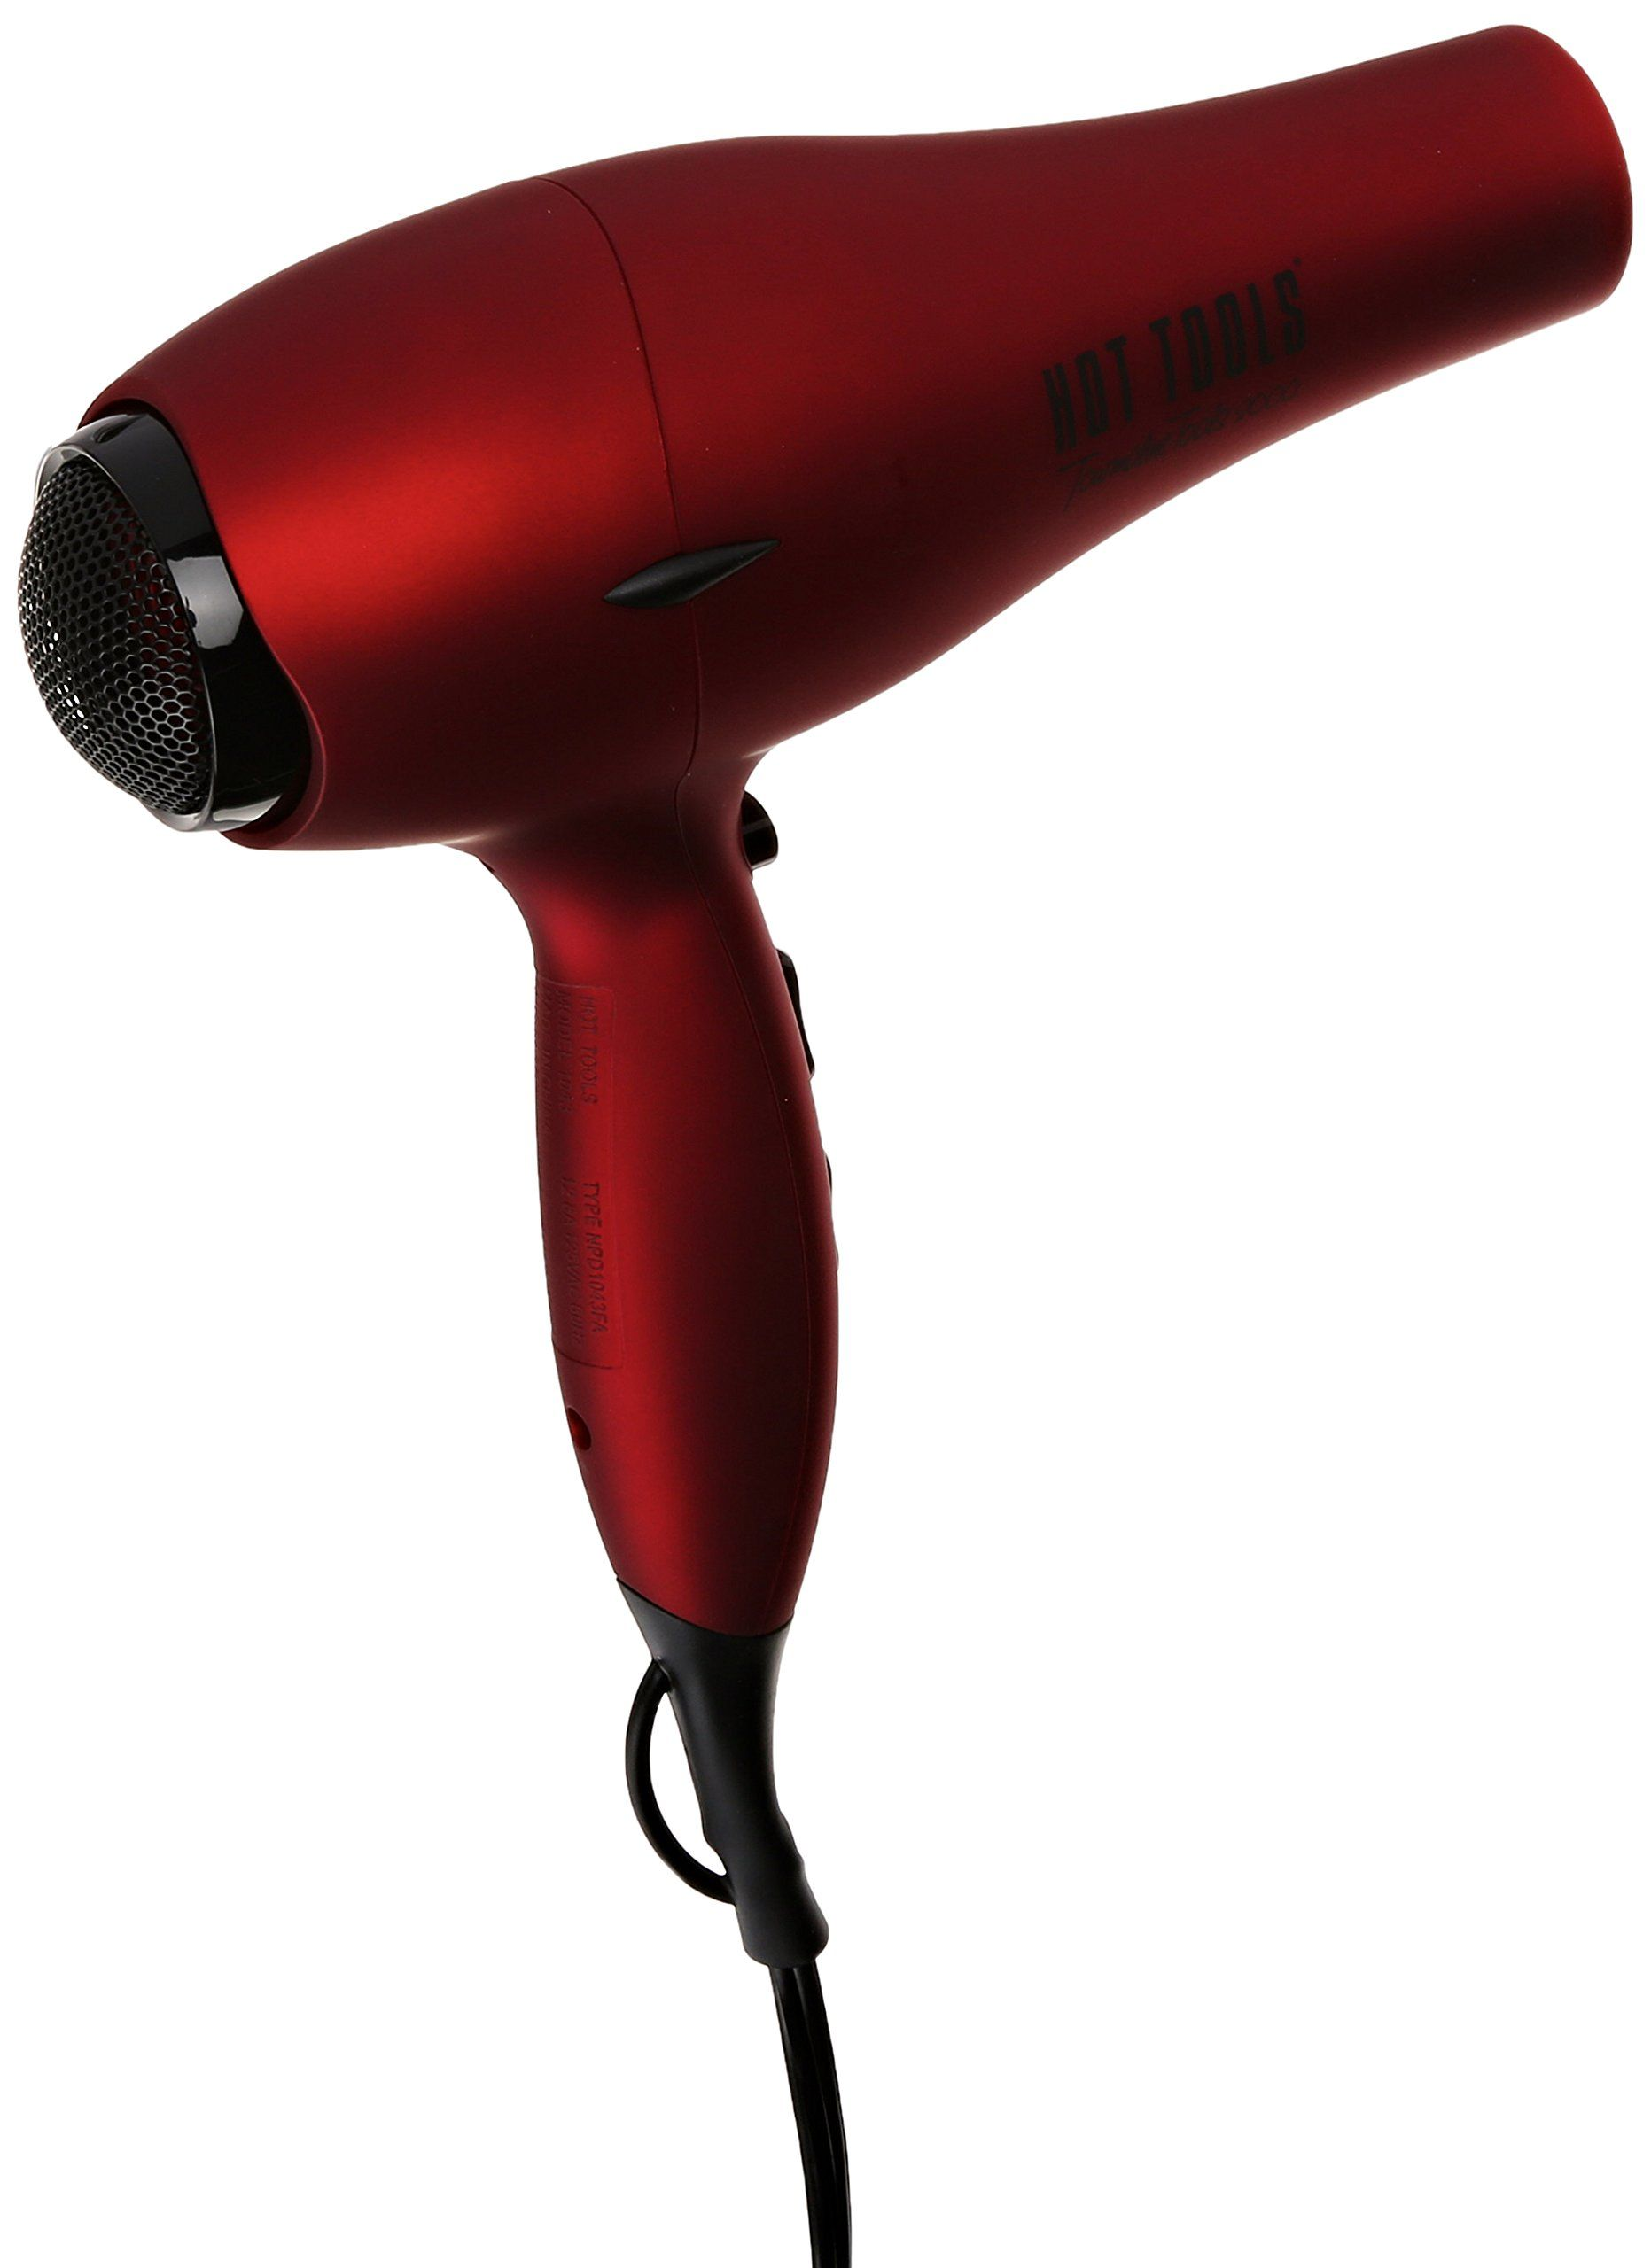 How Hot Does A Hair Dryer Get